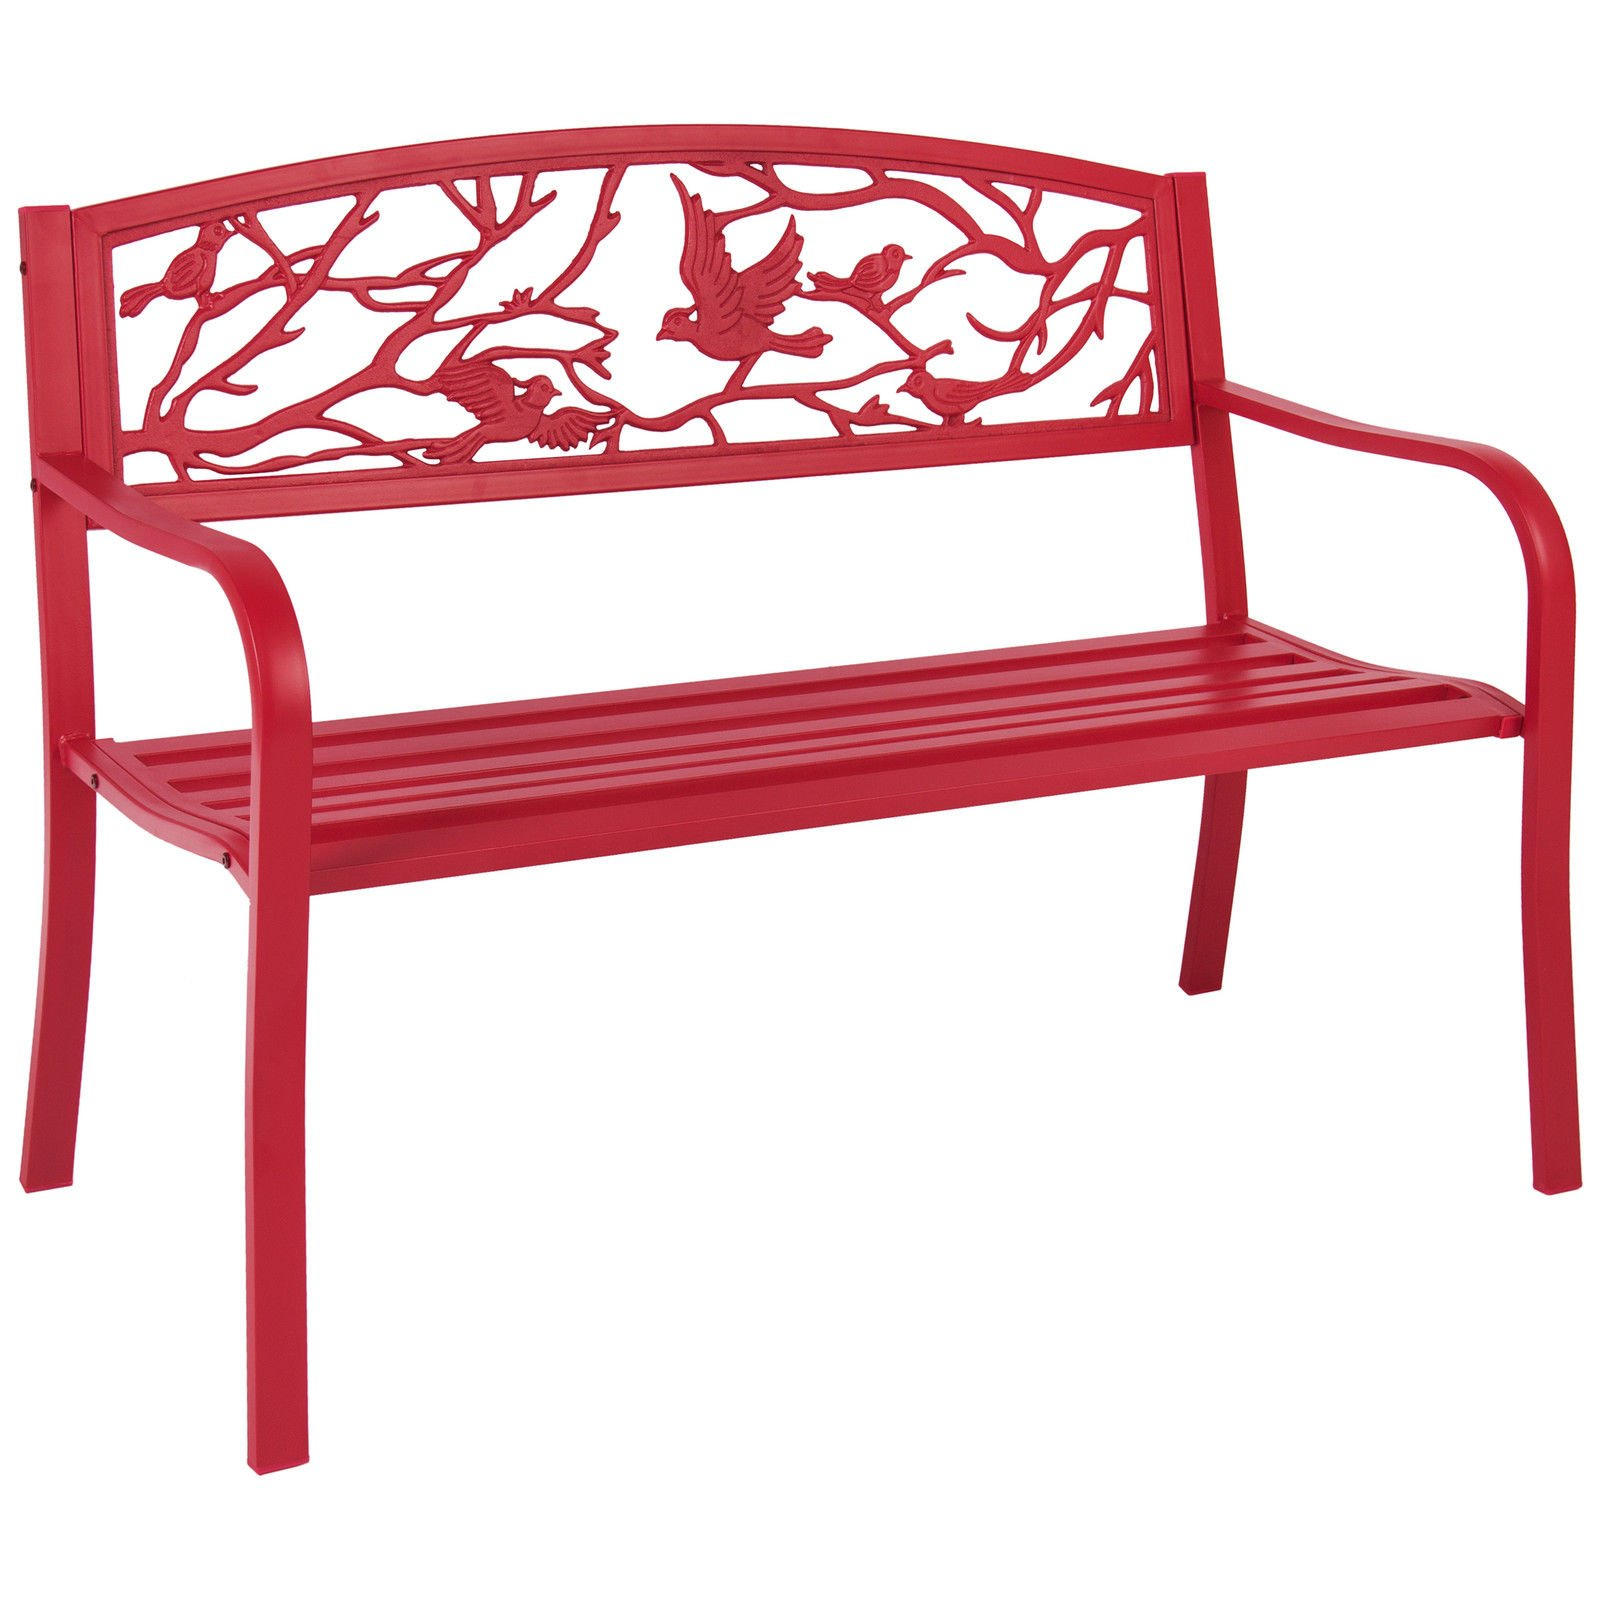 Rose Red Steel Patio Garden Park Bench Outdoor Living Patio Furniture by Alitop